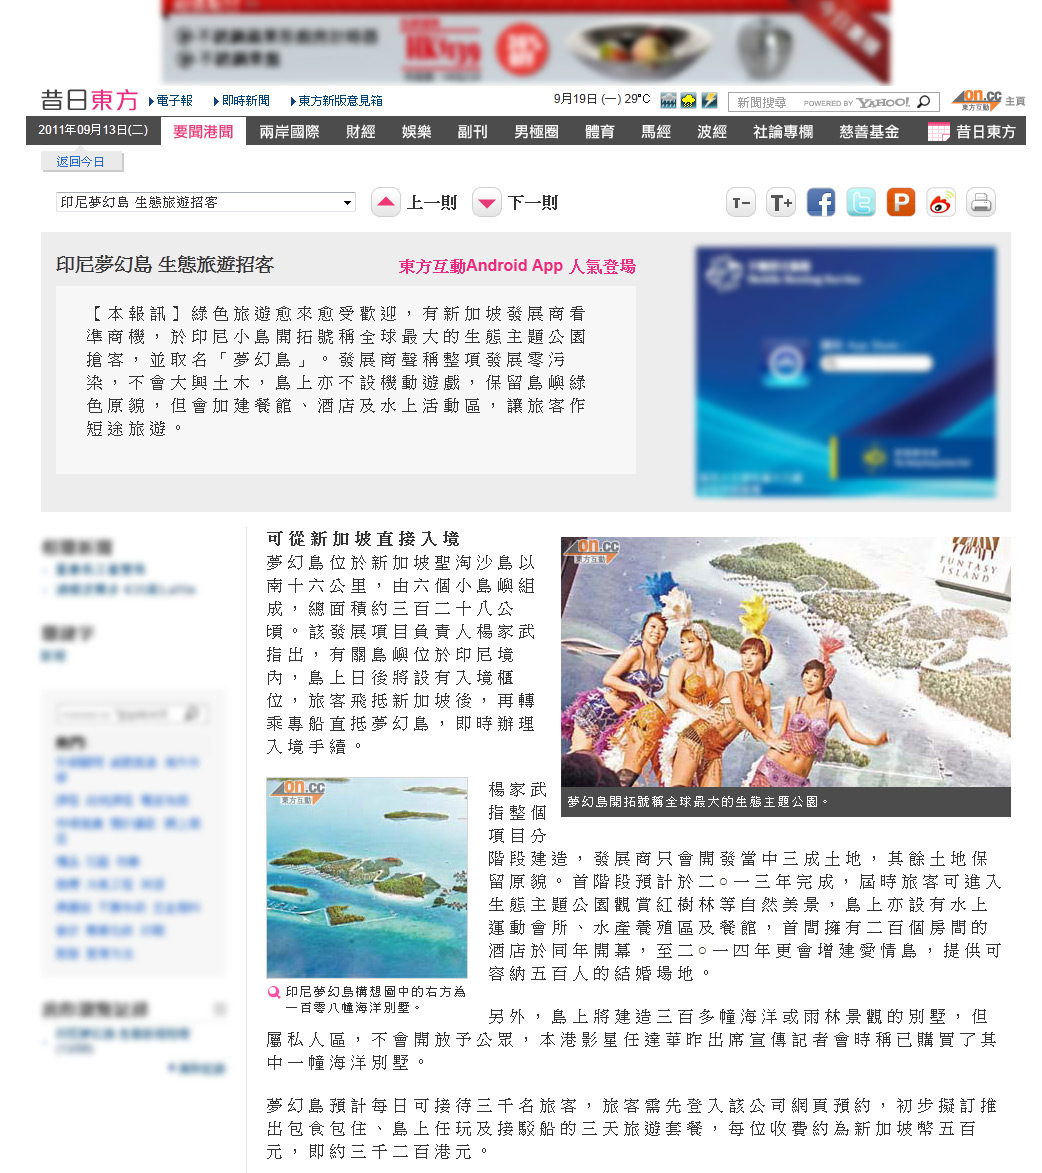 Local News (Malaysia, Hong Kong, China) :